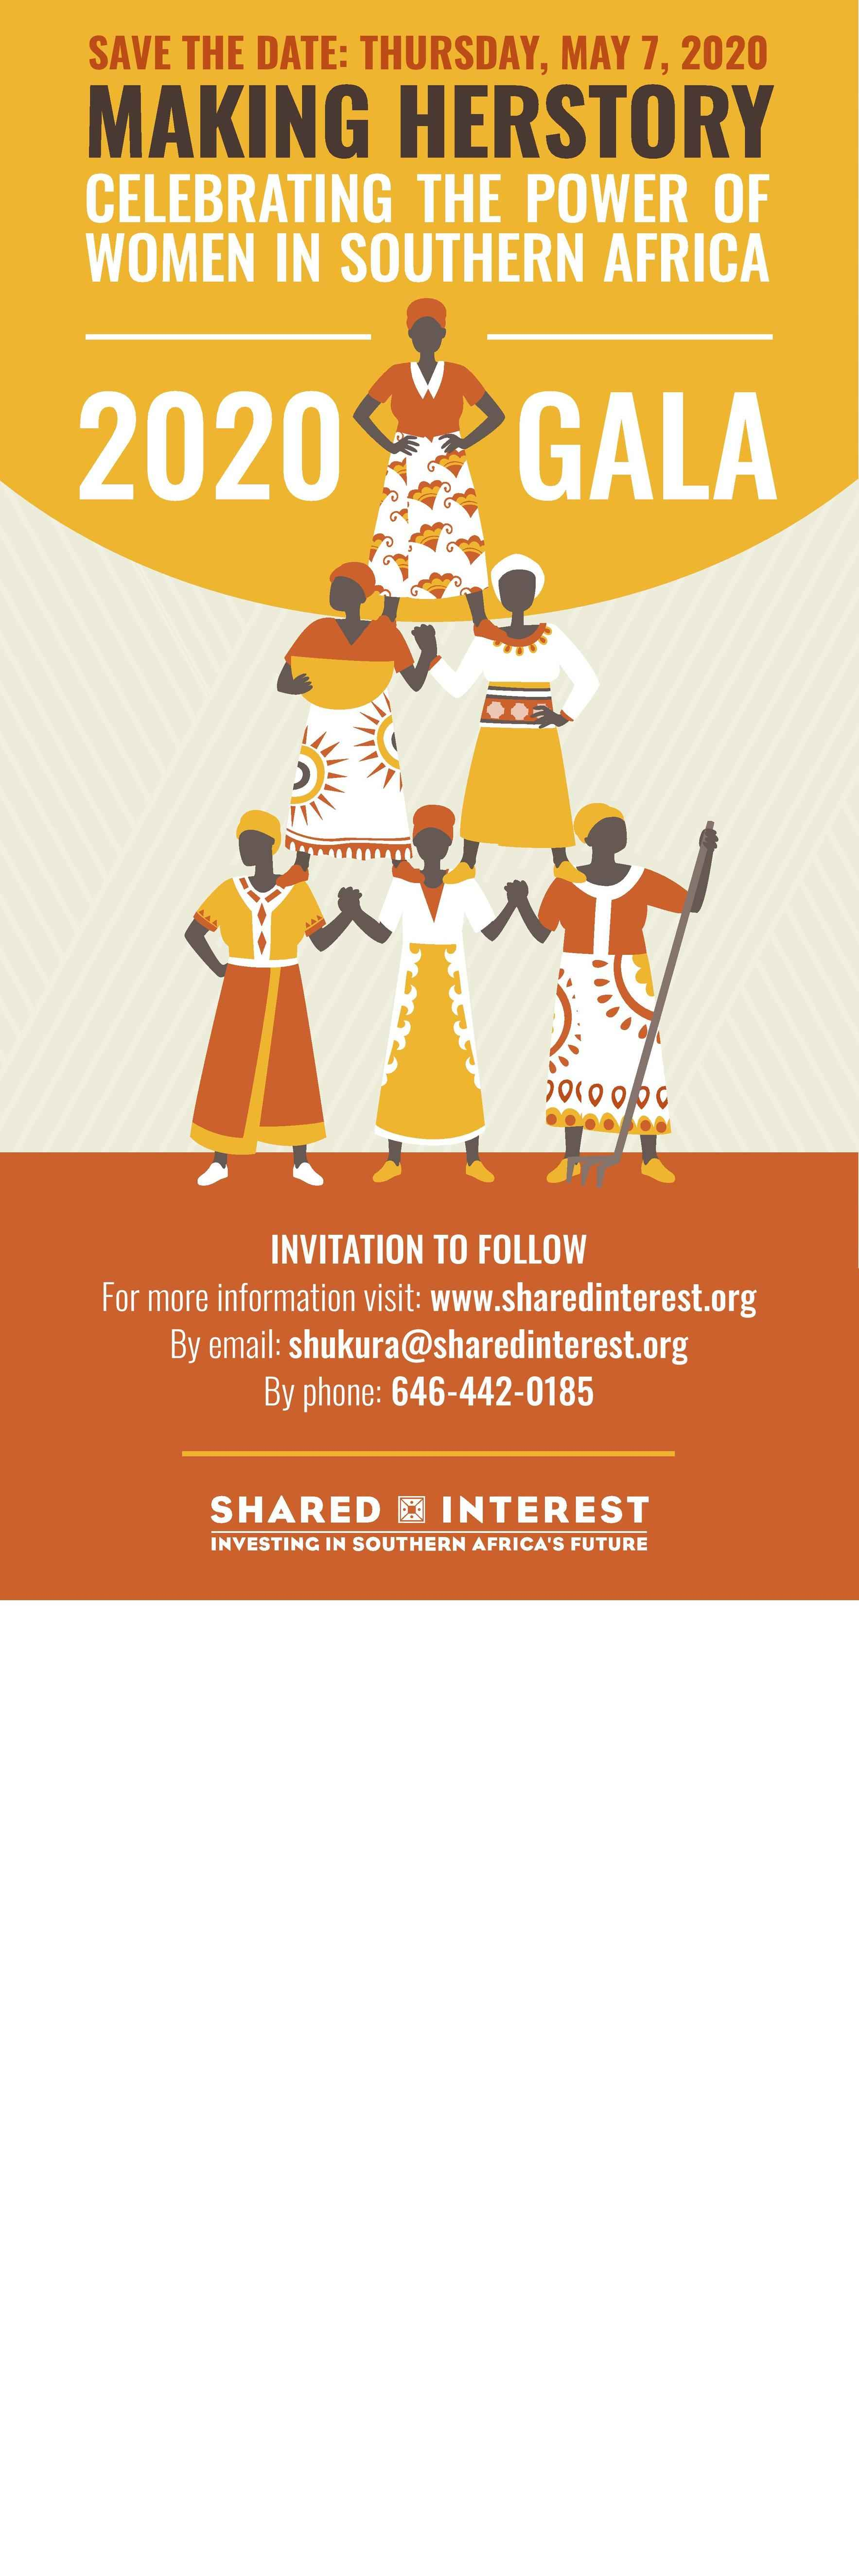 Shared Interest 26th Anniversary Gala - Making HERstory: Celebrating the Power of Women in Southern Africa image